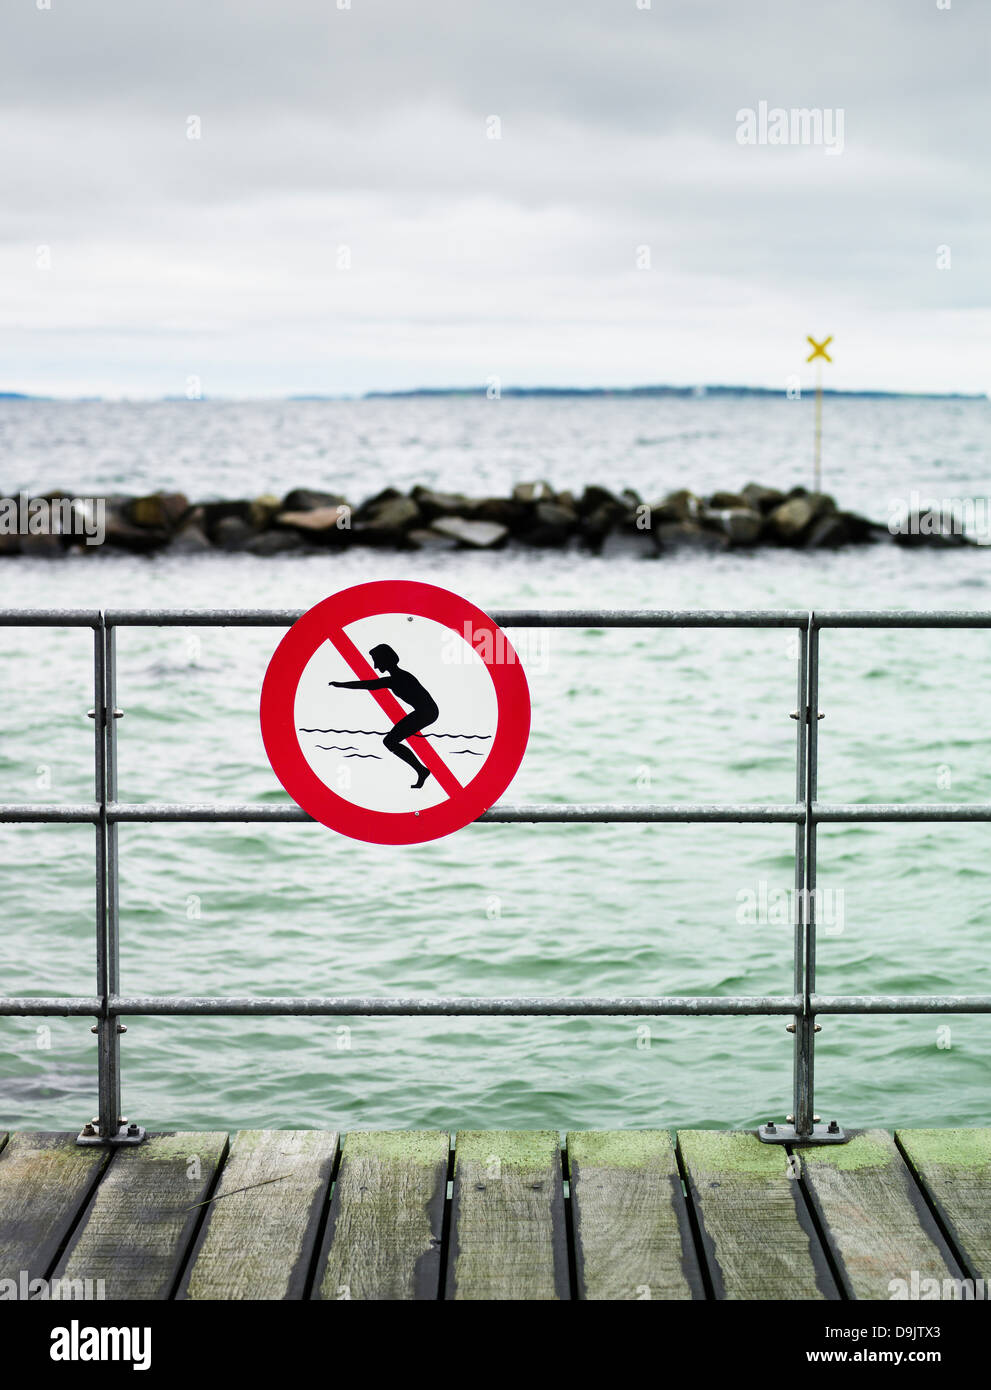 No swimming sign on pier railing - Stock Image